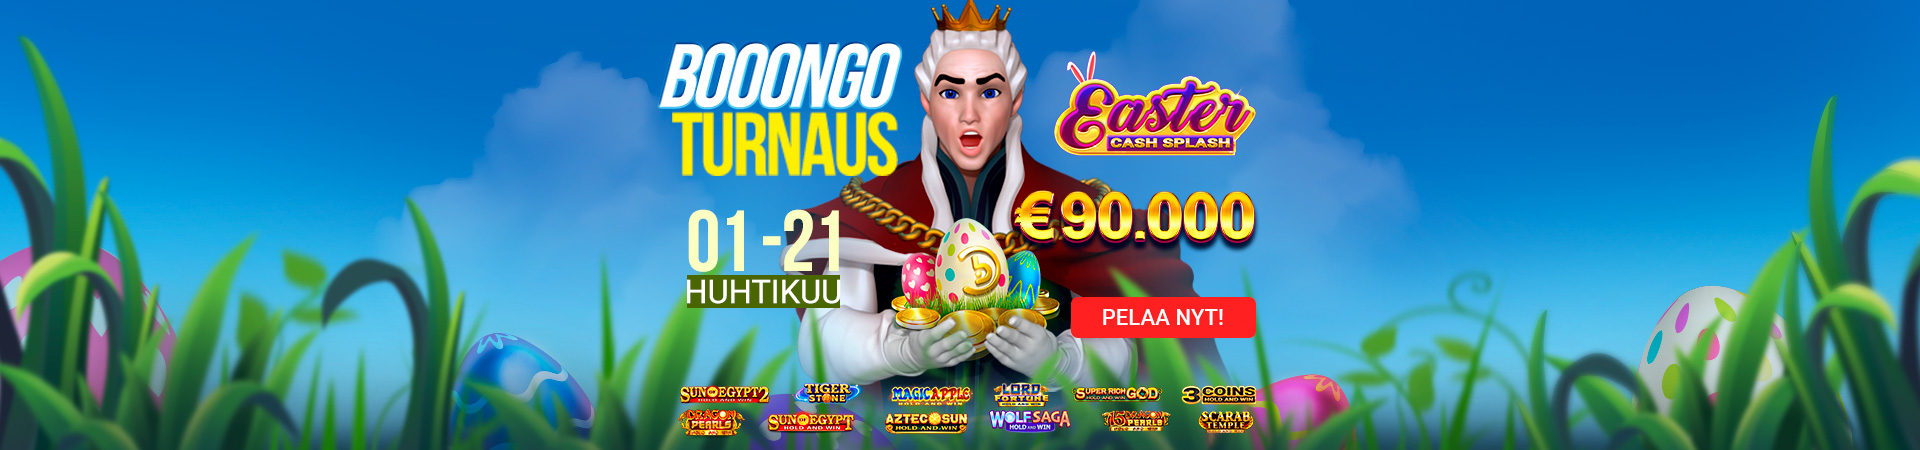 2021 03 King Billy Finnish Booongo Tournament Easter Cash Splash 1920x450